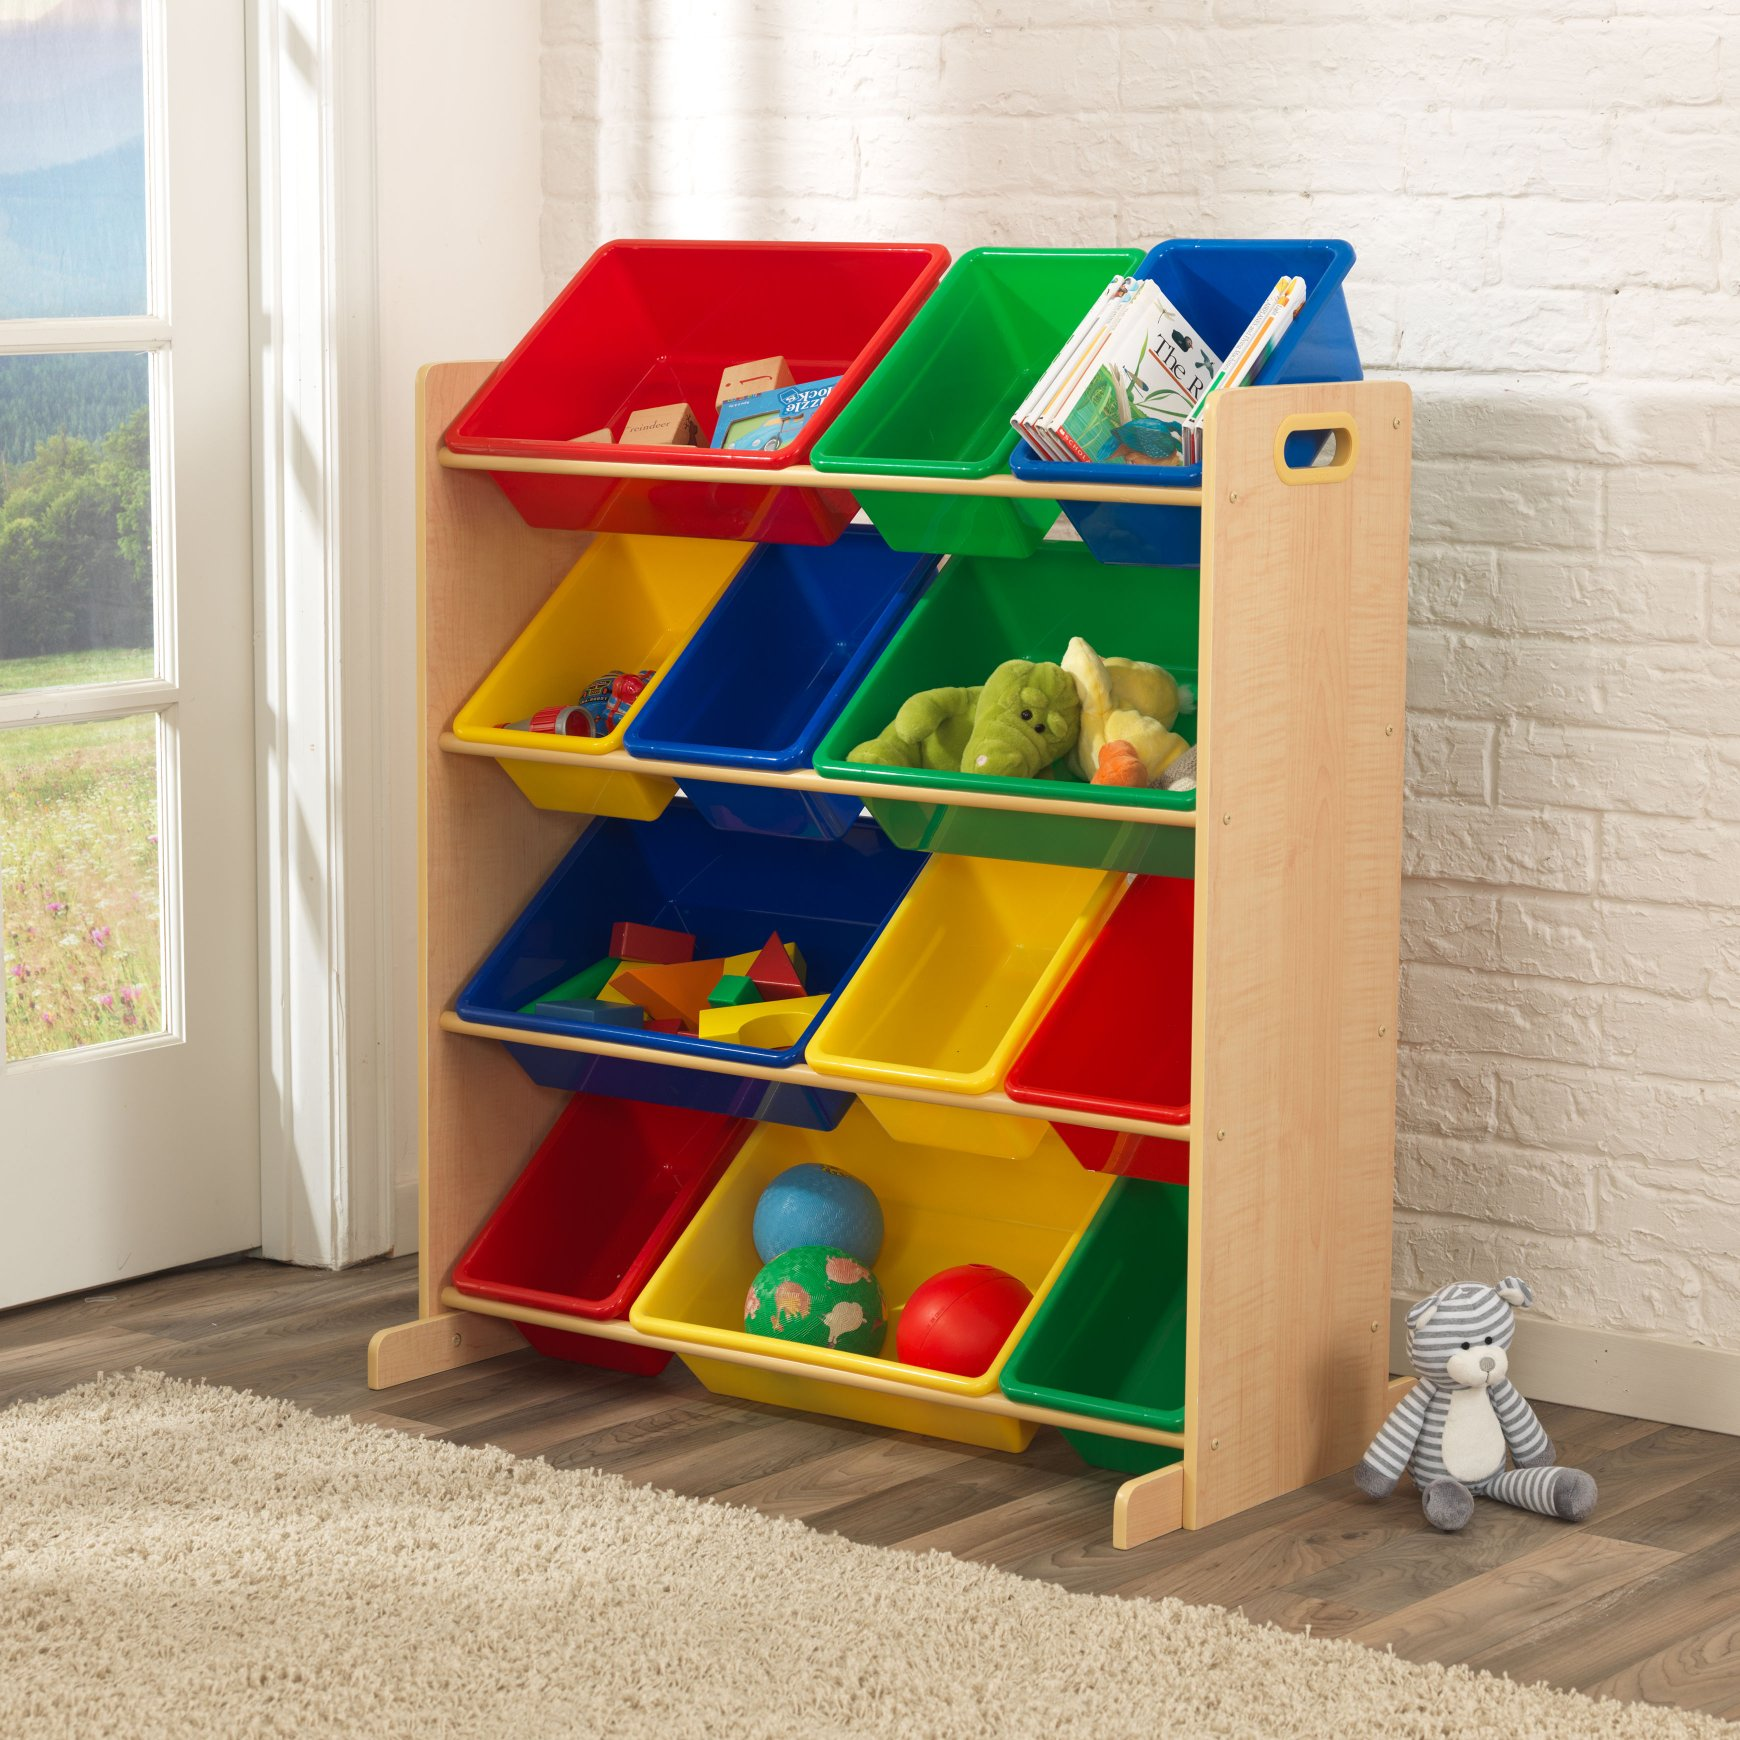 12 Bin Storage Unit Natural for children in South Africa